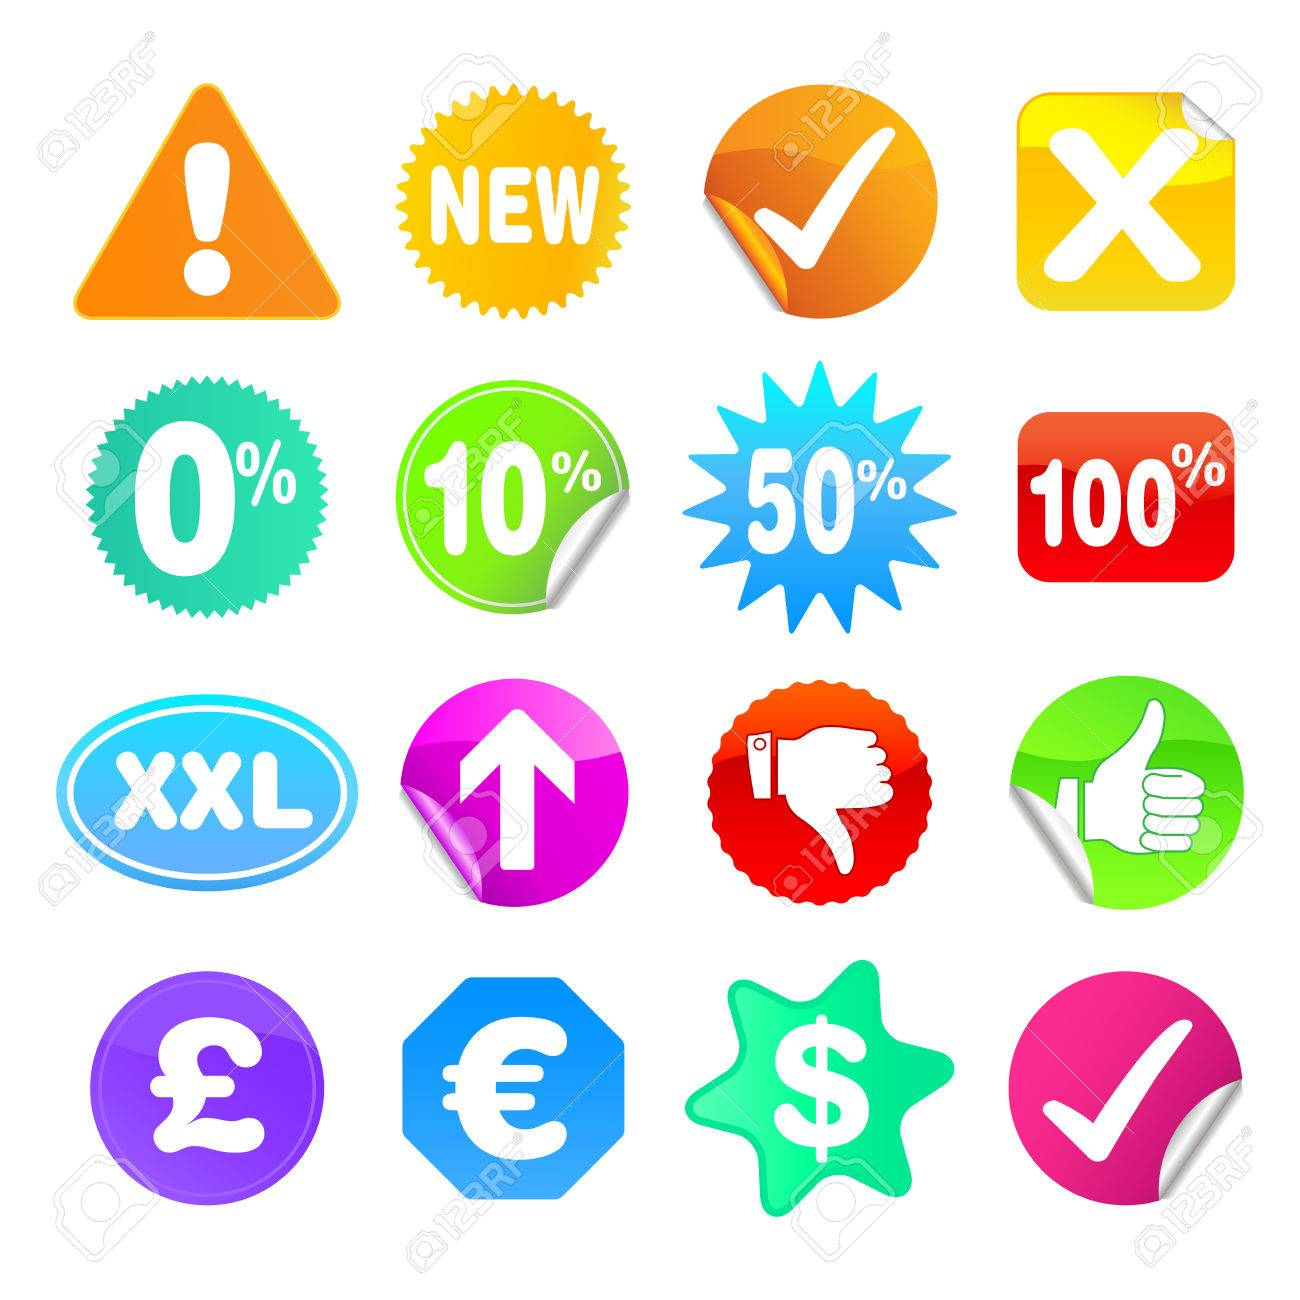 Bright stickers for web, presentations or computer applications.  Various shapes and common symbols included. Stock Vector - 6282335